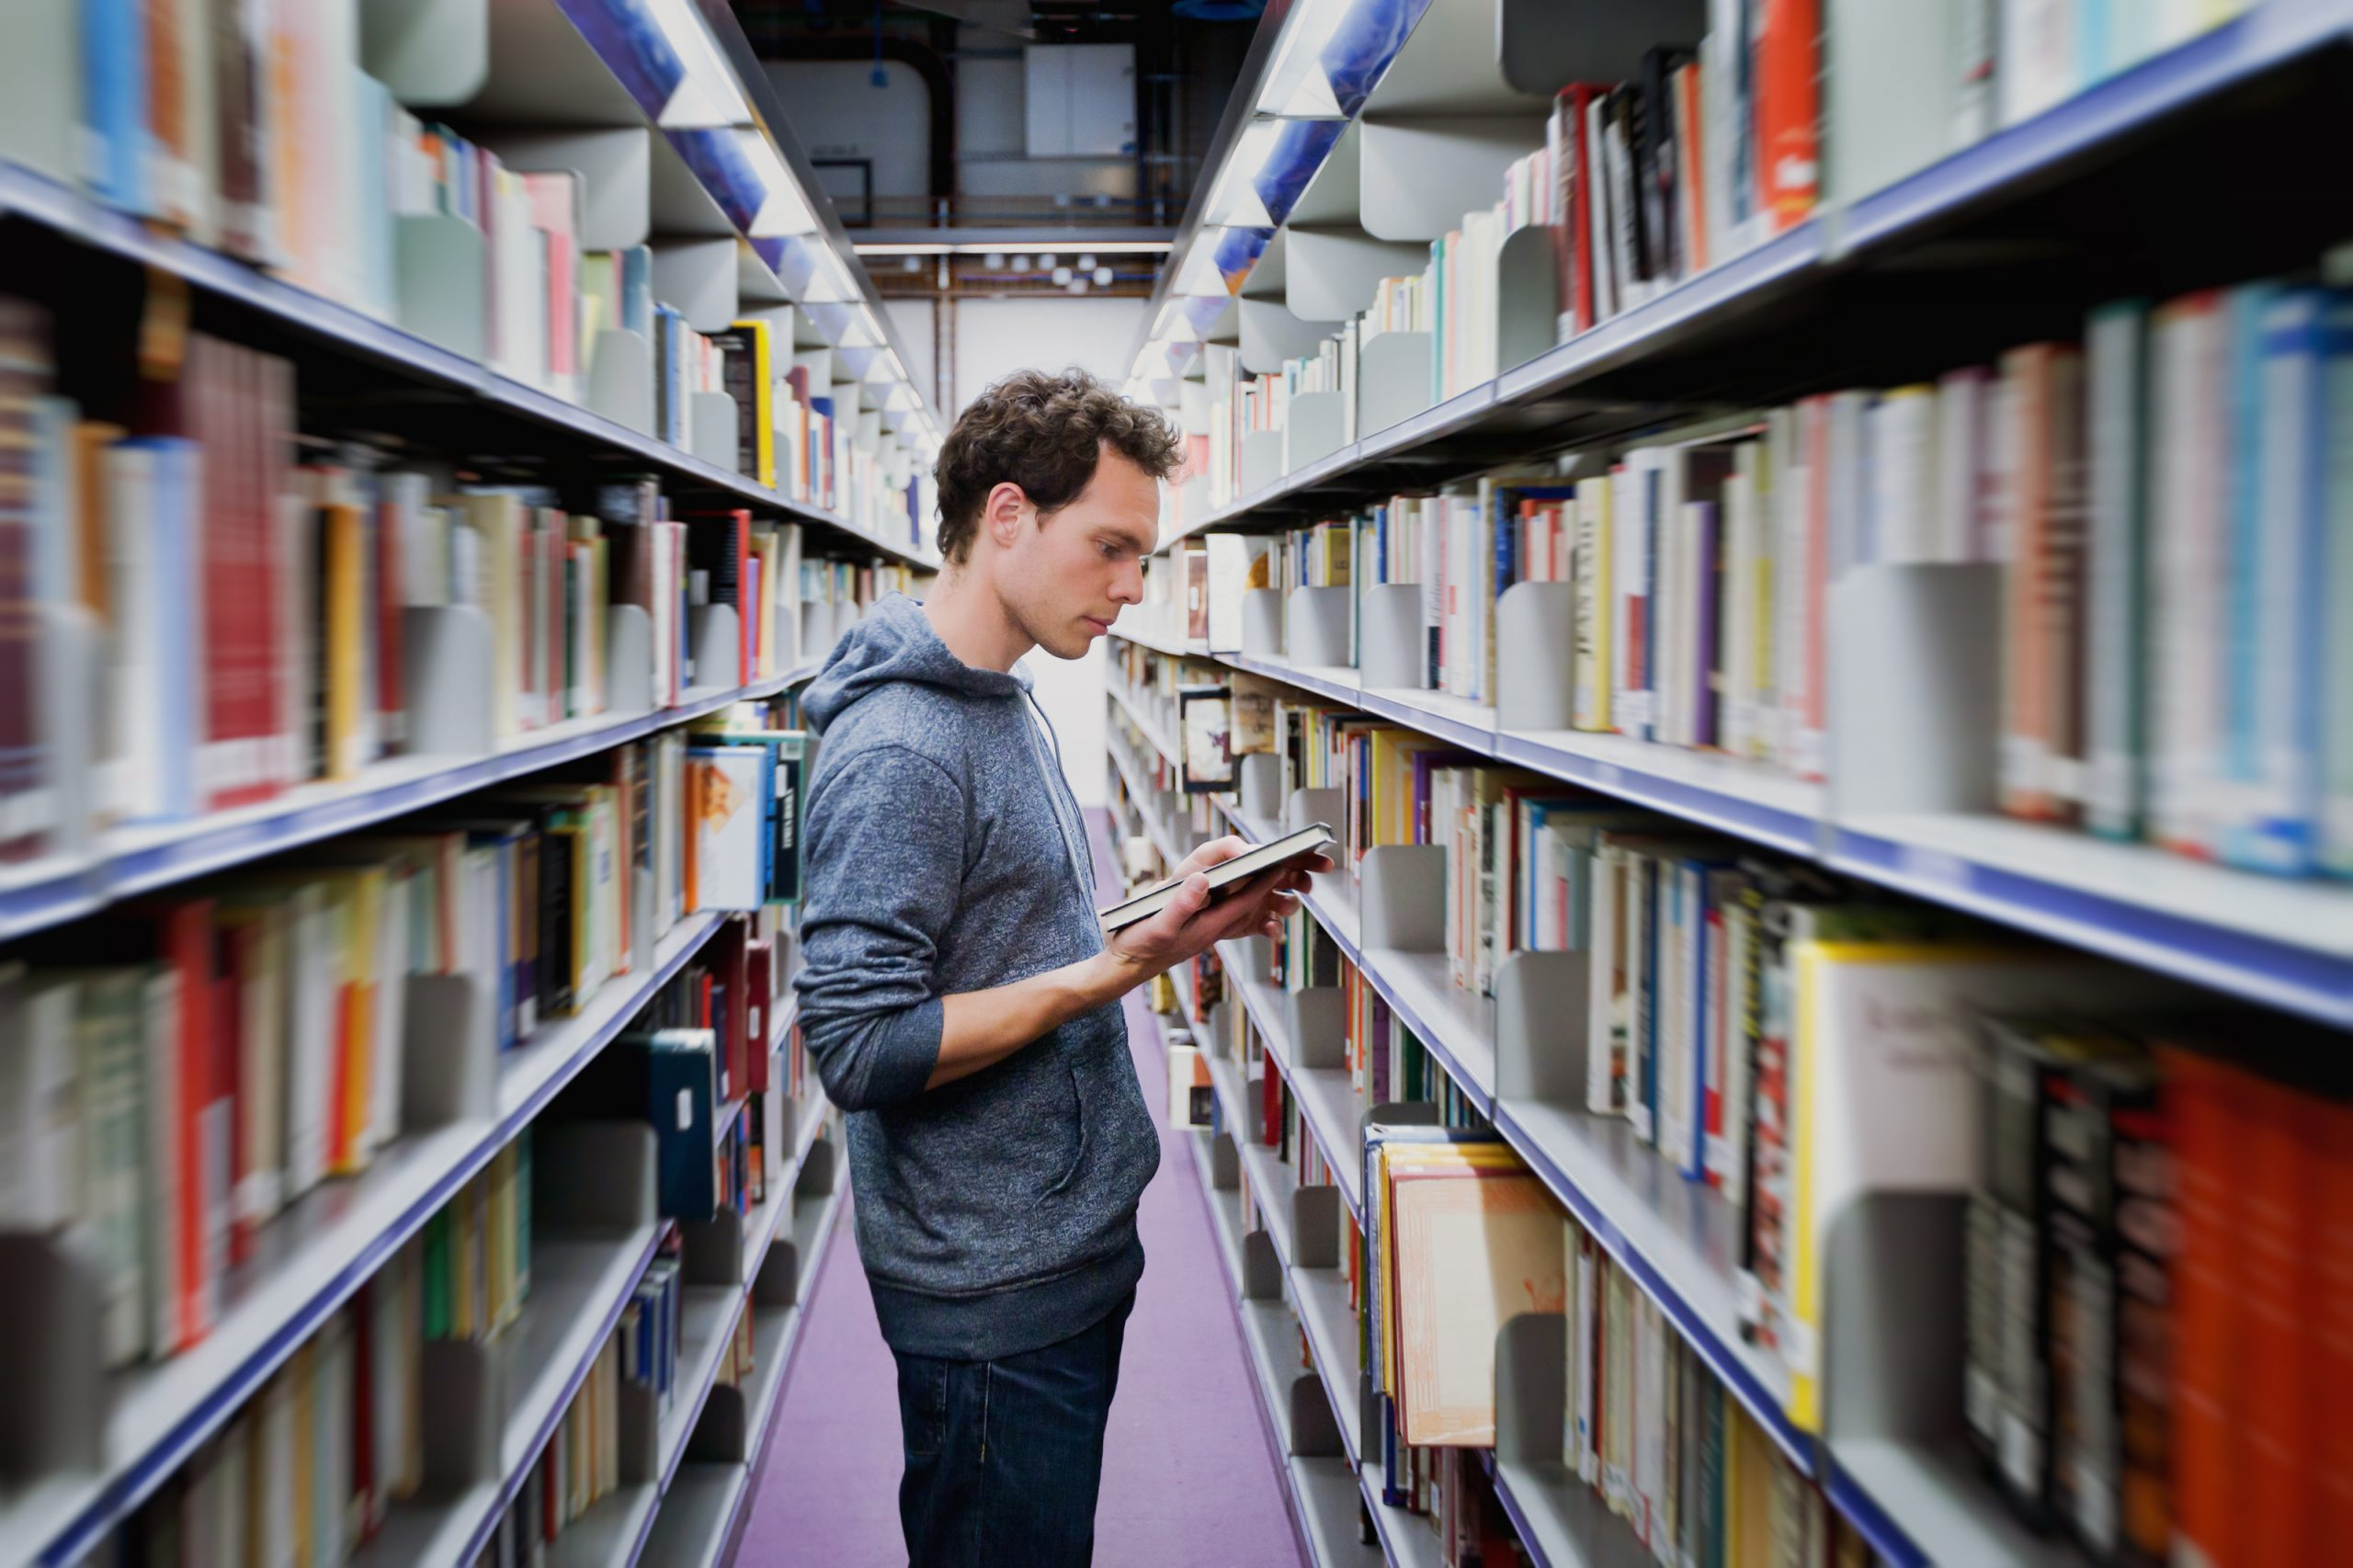 Student stands between long library bookshelves reading a book